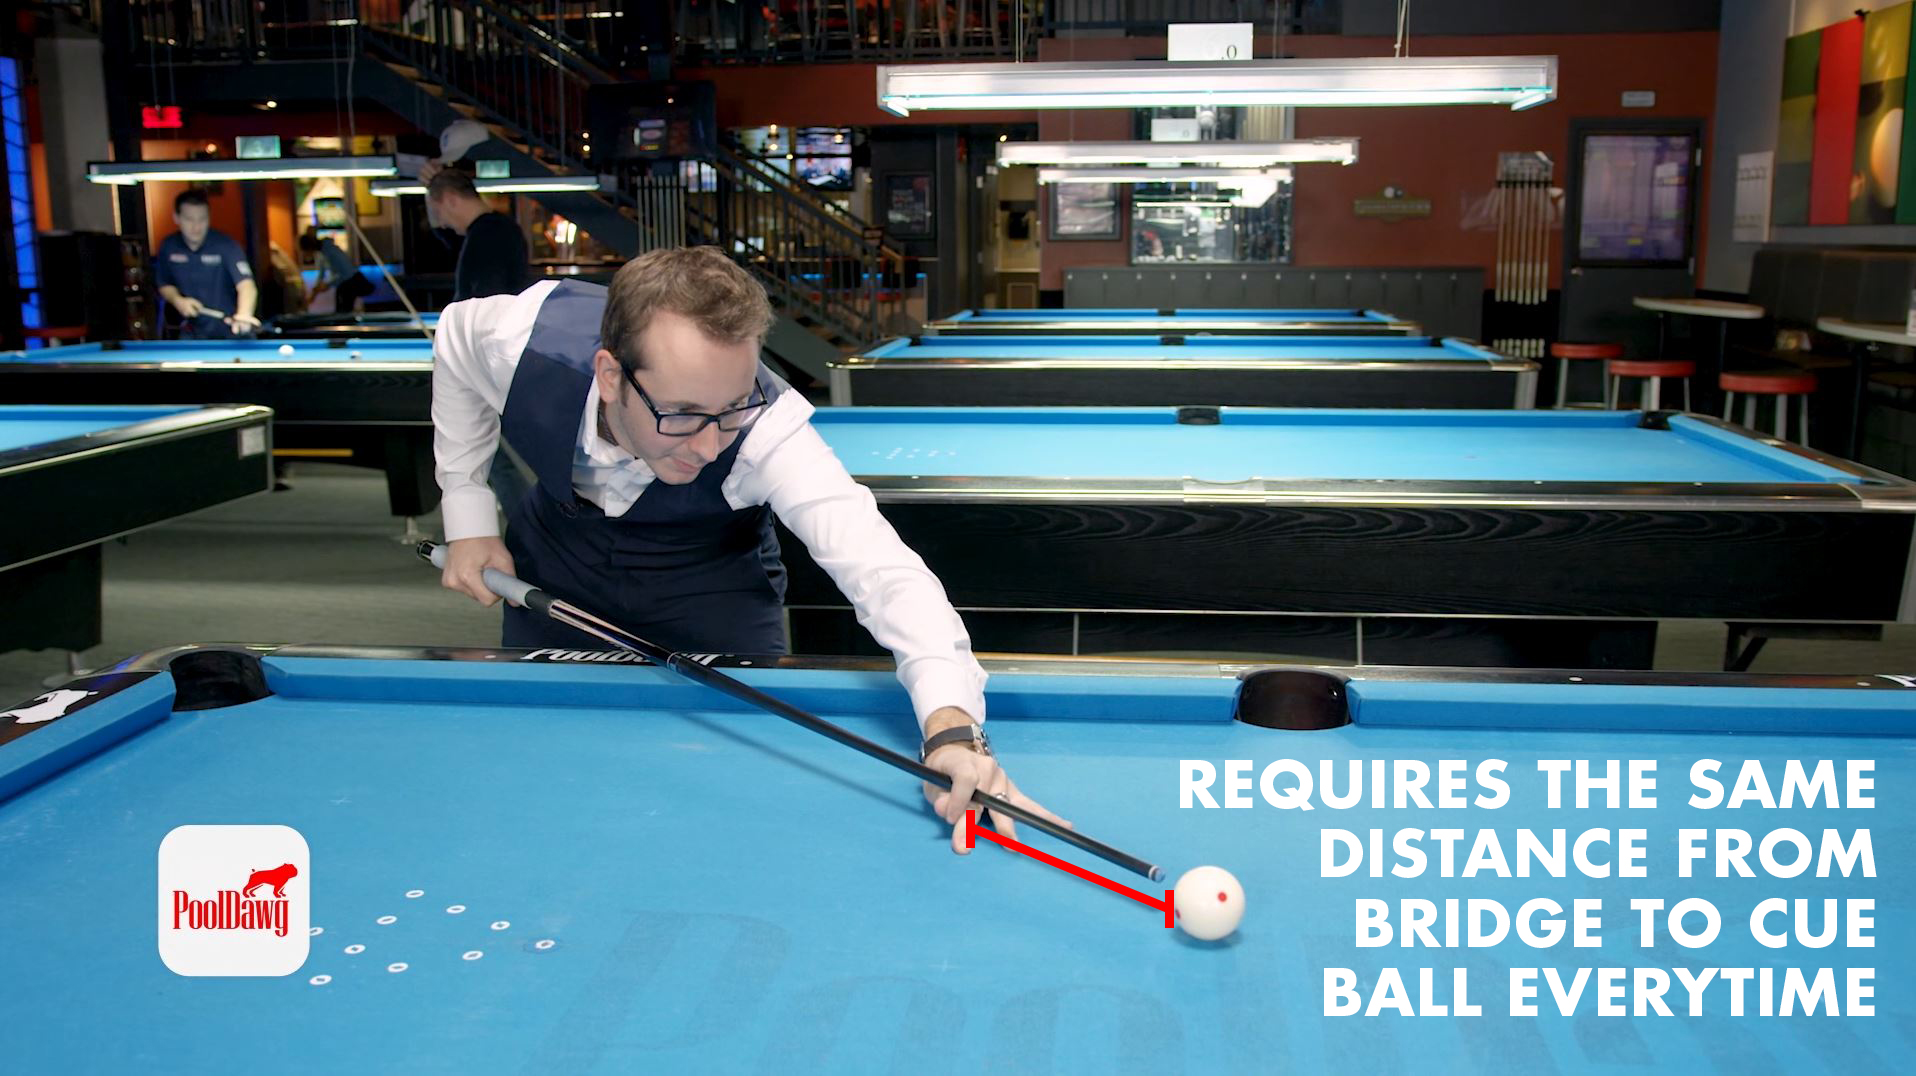 Florian demonstrates planting the bridge hand with the same distance to the cue ball as is required for CTE (Center-to-Edge) aiming.